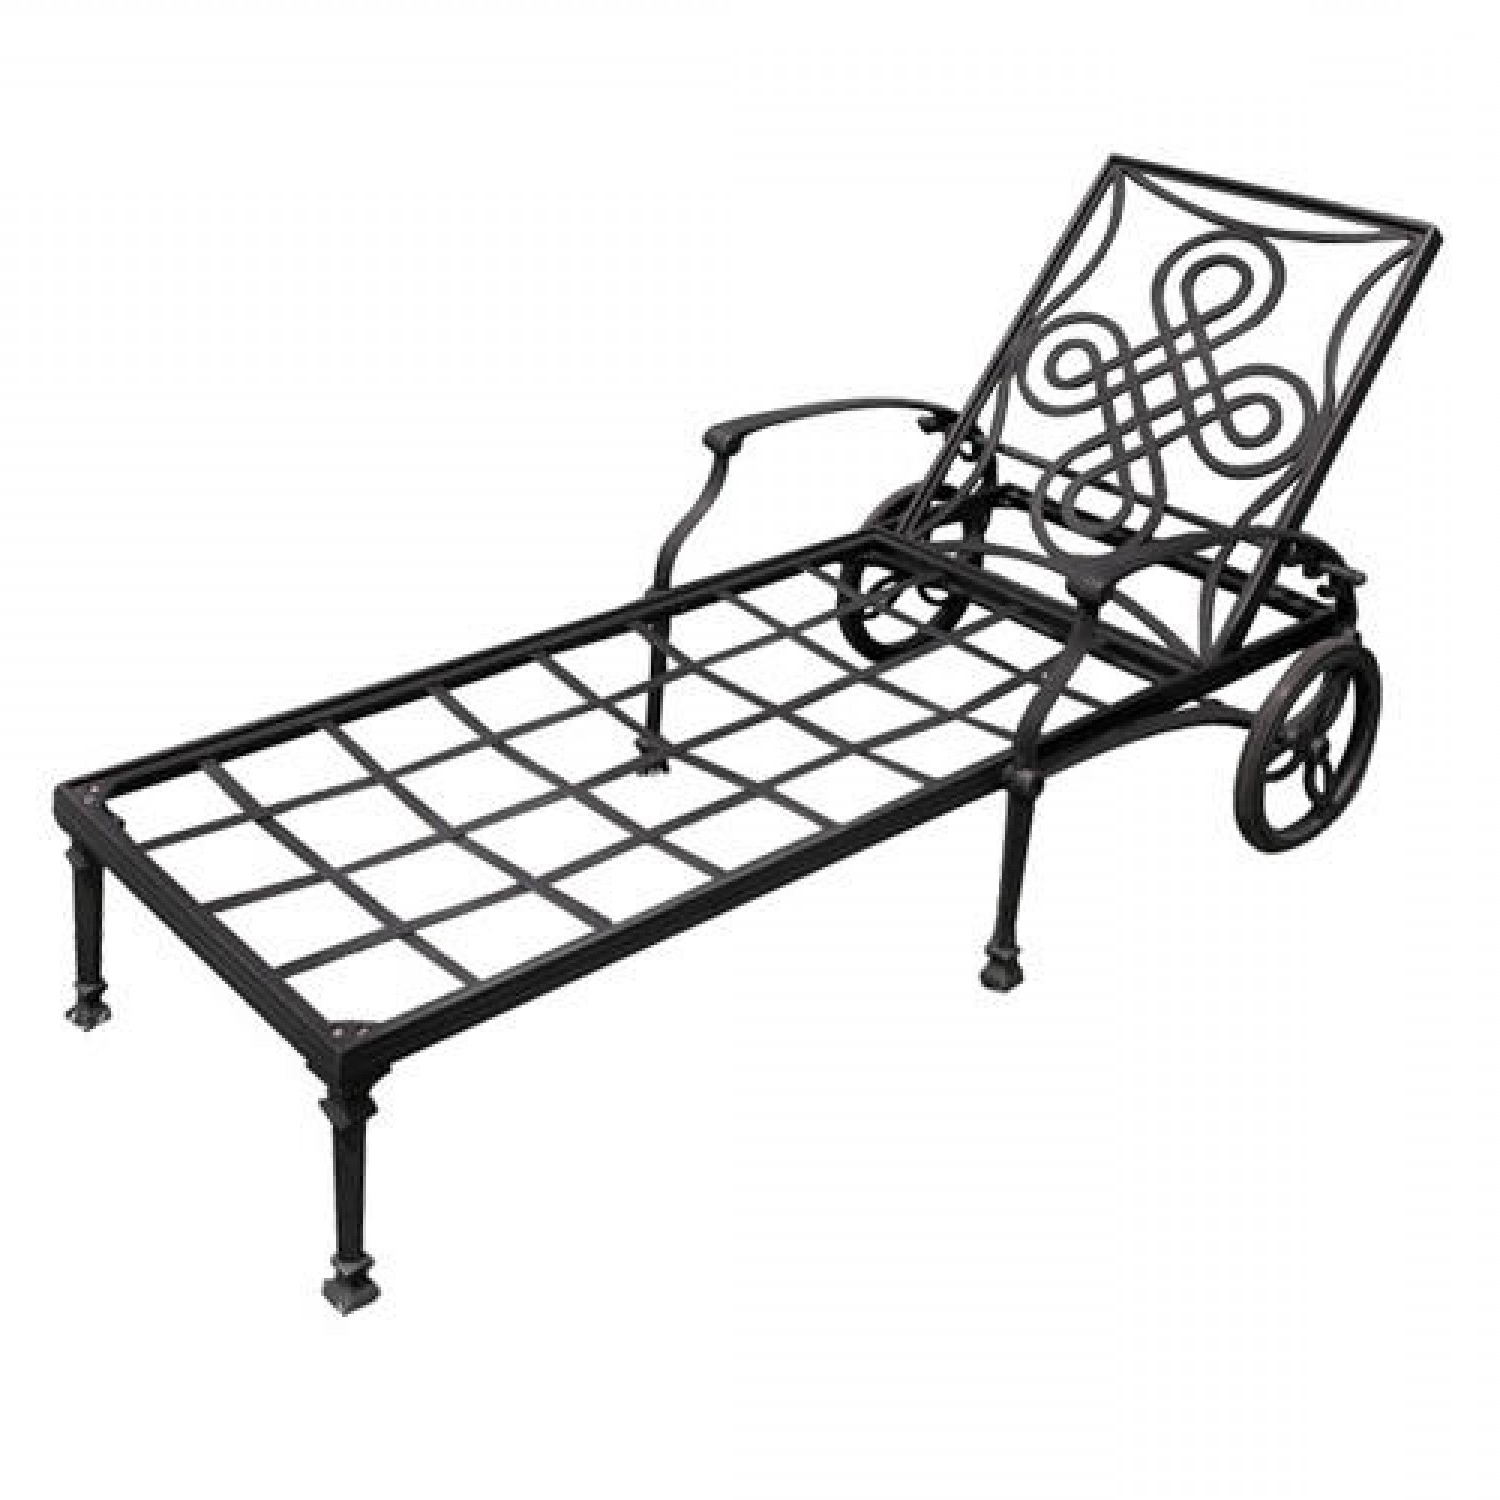 Cast Aluminum Chaise Lounges With Wheels Intended For Current Cast Aluminum Lounge Chairs • Lounge Chairs Ideas (View 8 of 15)